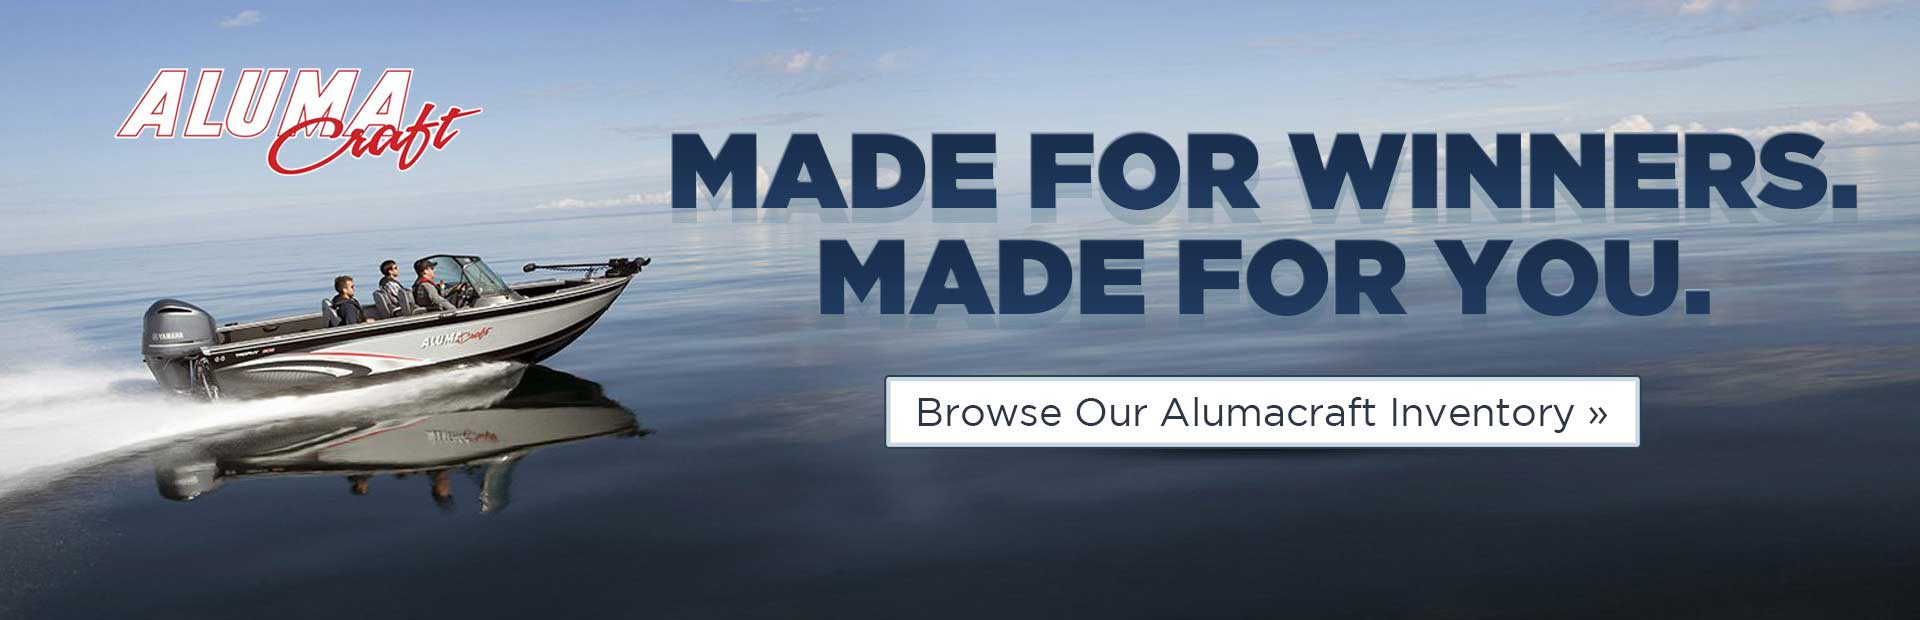 Browse our Alumacraft inventory.